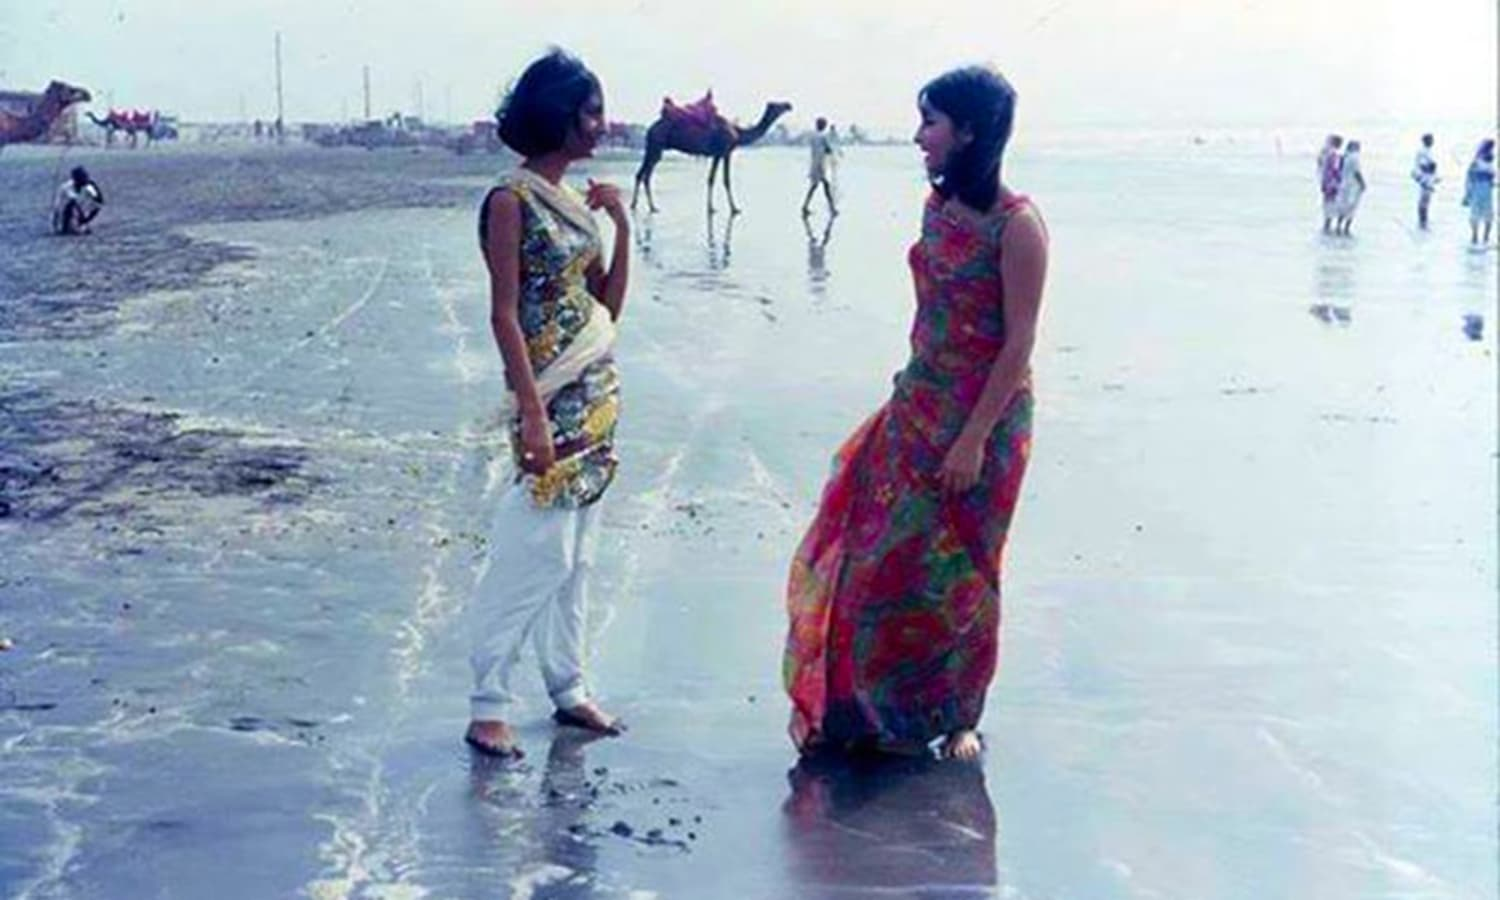 Karachi's Clifton Beach in 1970s. In the years to come it will become one of the most polluted. (Photo: Archive 150)